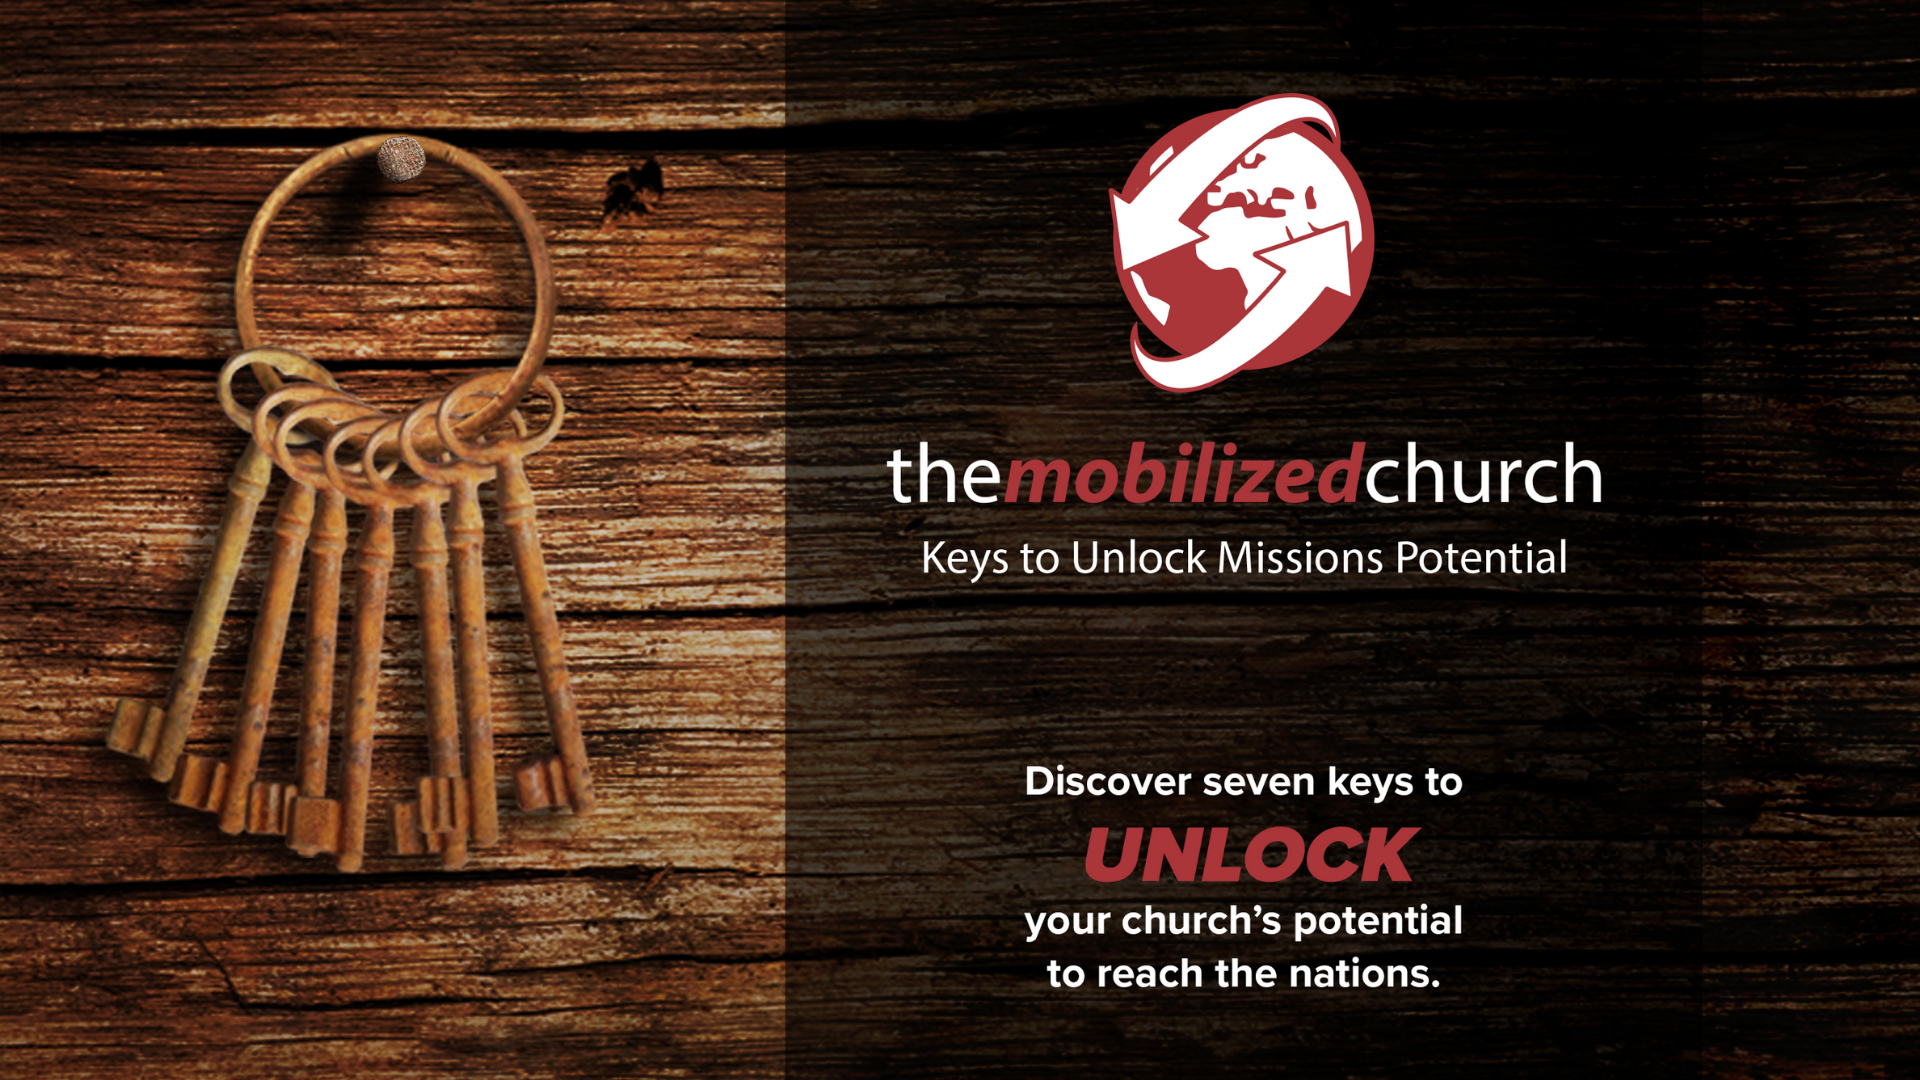 The Mobilized Church: Keys to Unlock Missions Potential 2021